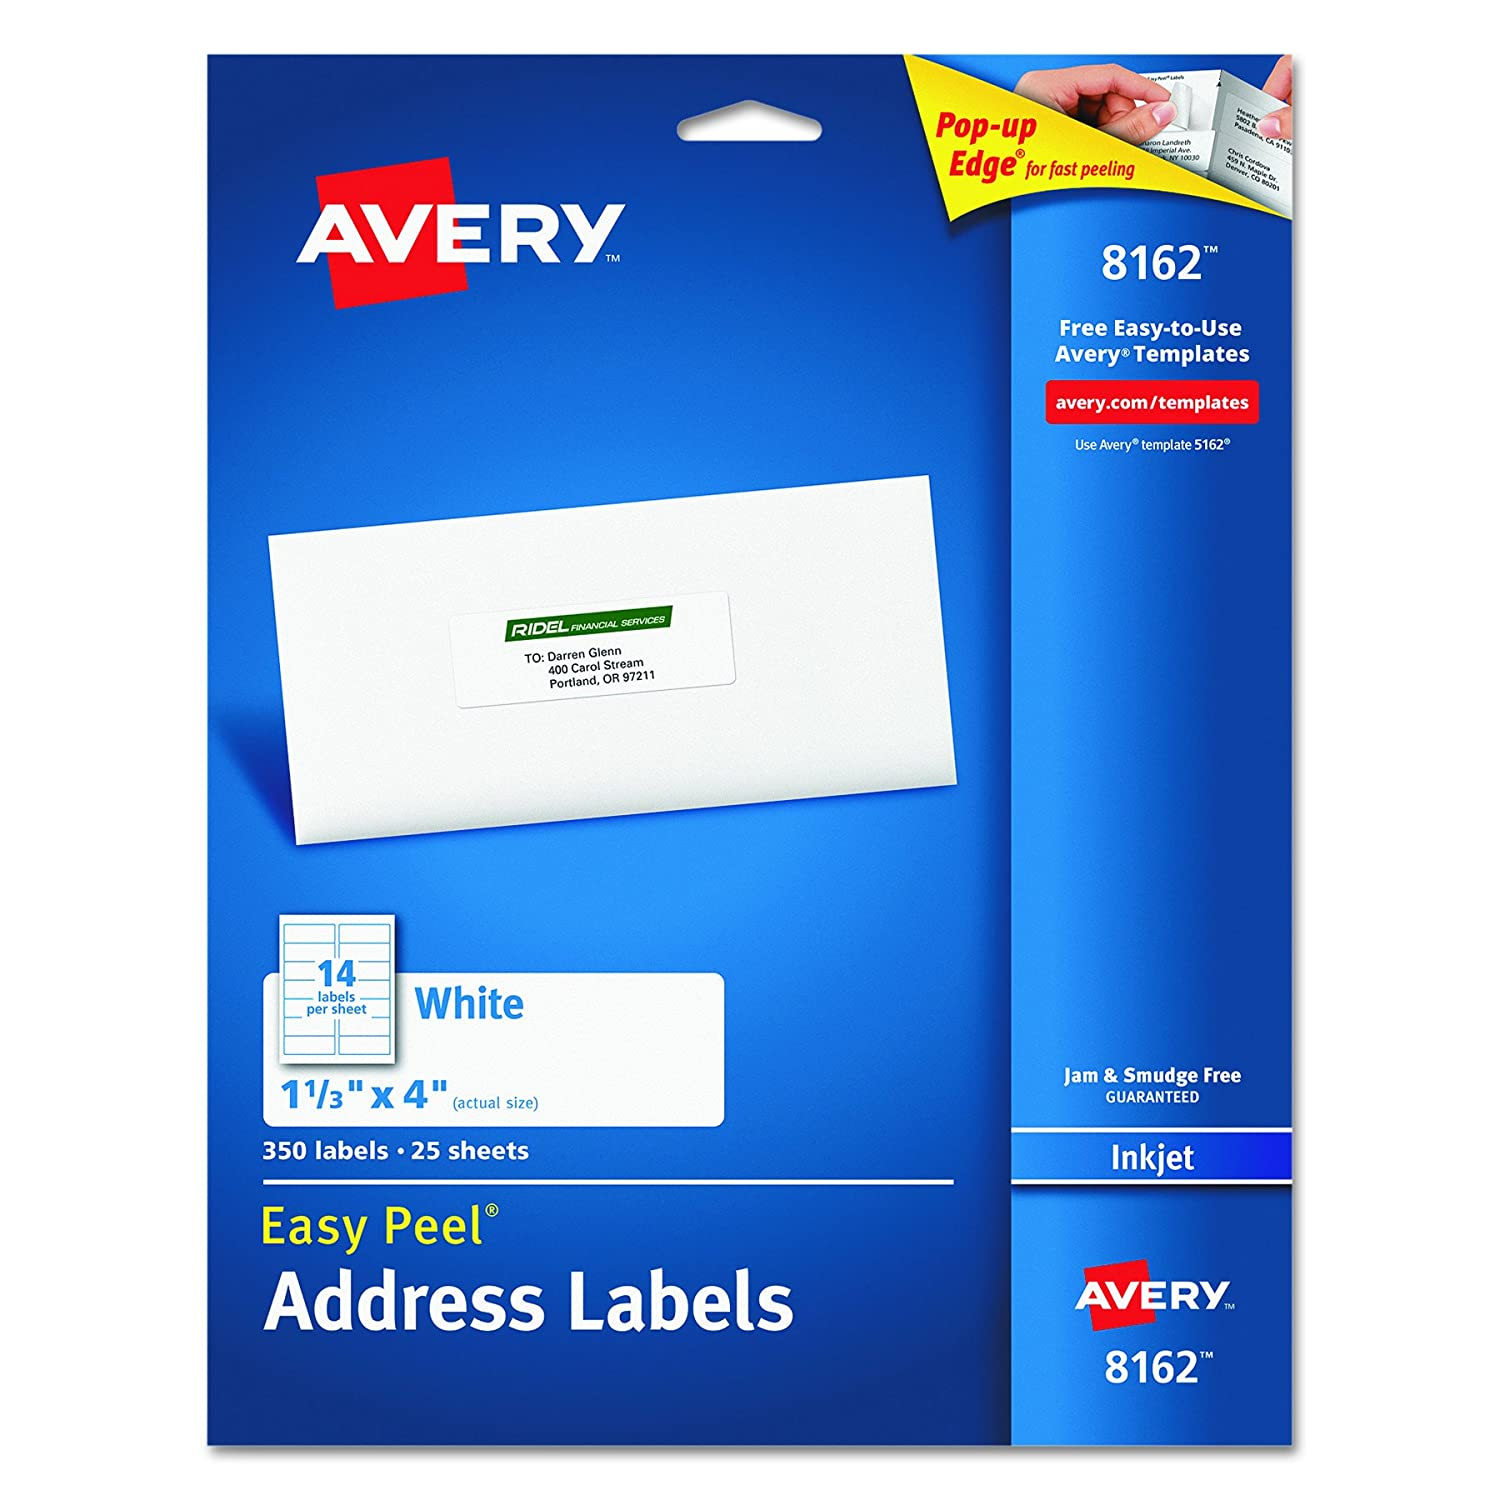 Avery template 8161 gallery templates human services resume templates amazoncom avery easy peel address labels for inkjet printers 1 81cwg1jc nl b00008xpl6 avery template 8161 gallery templates pronofoot35fo Images